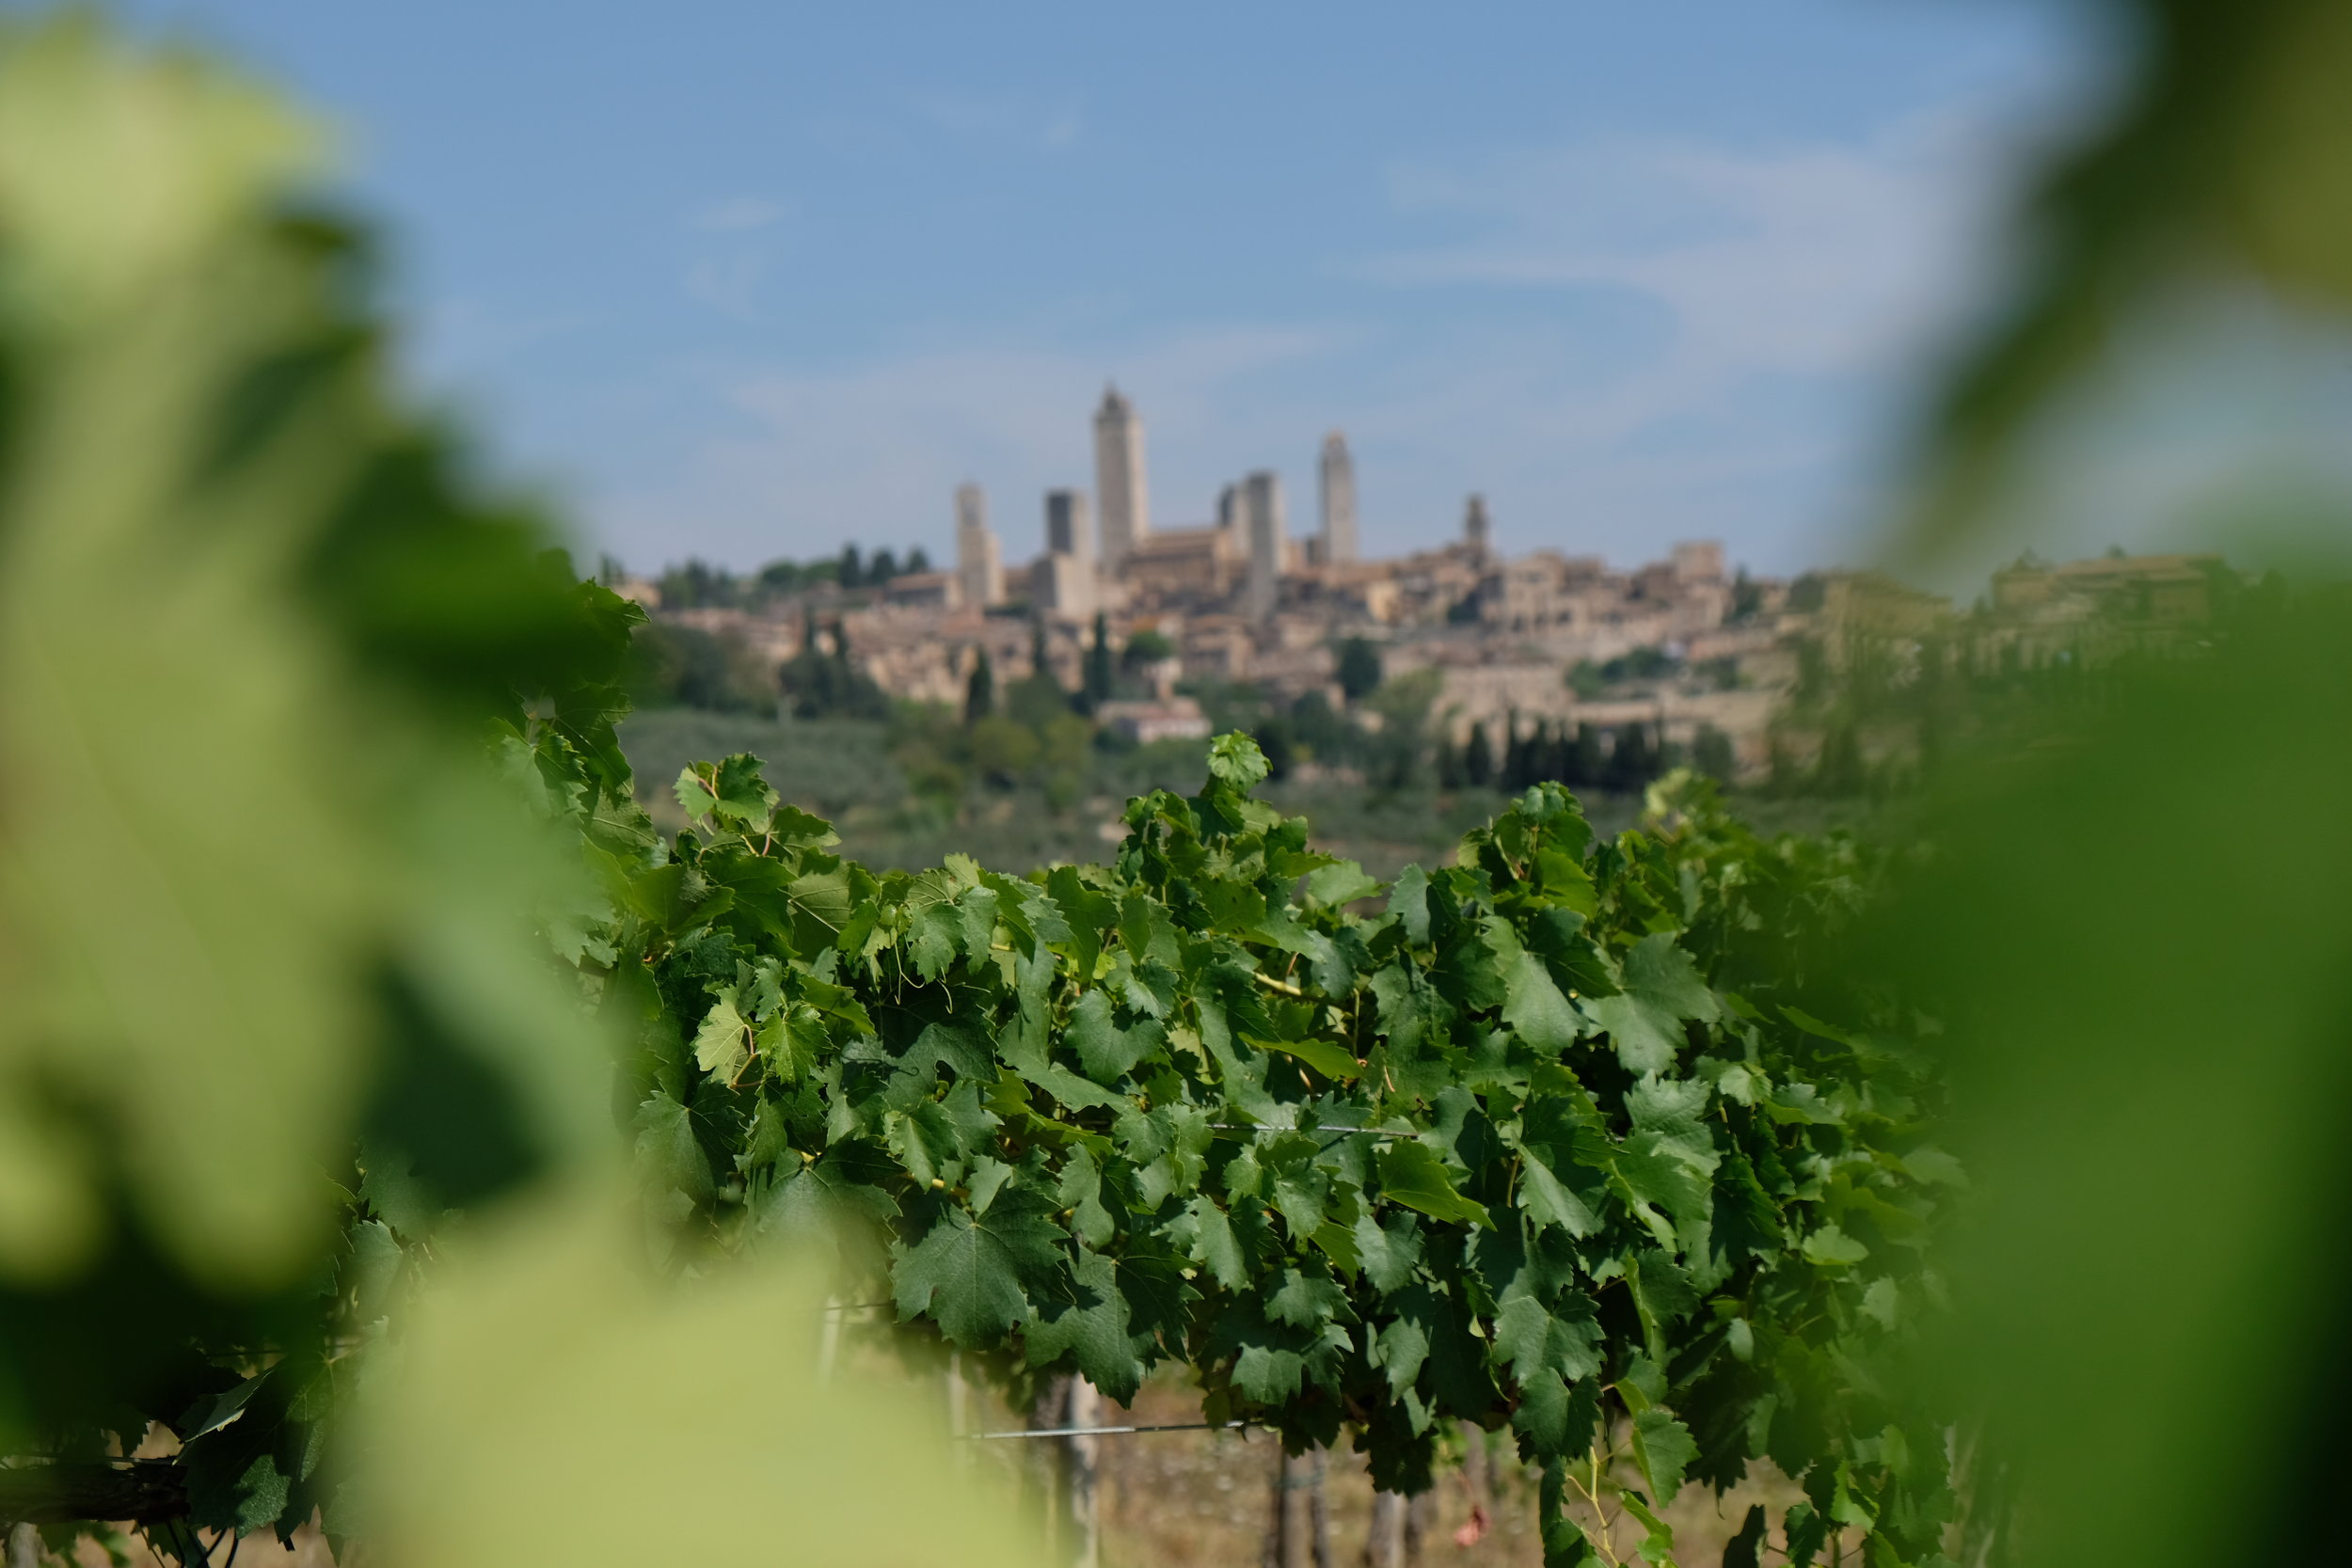 Culinary Gold of Tuscany: Saffron and Vernaccia di San Gimignano